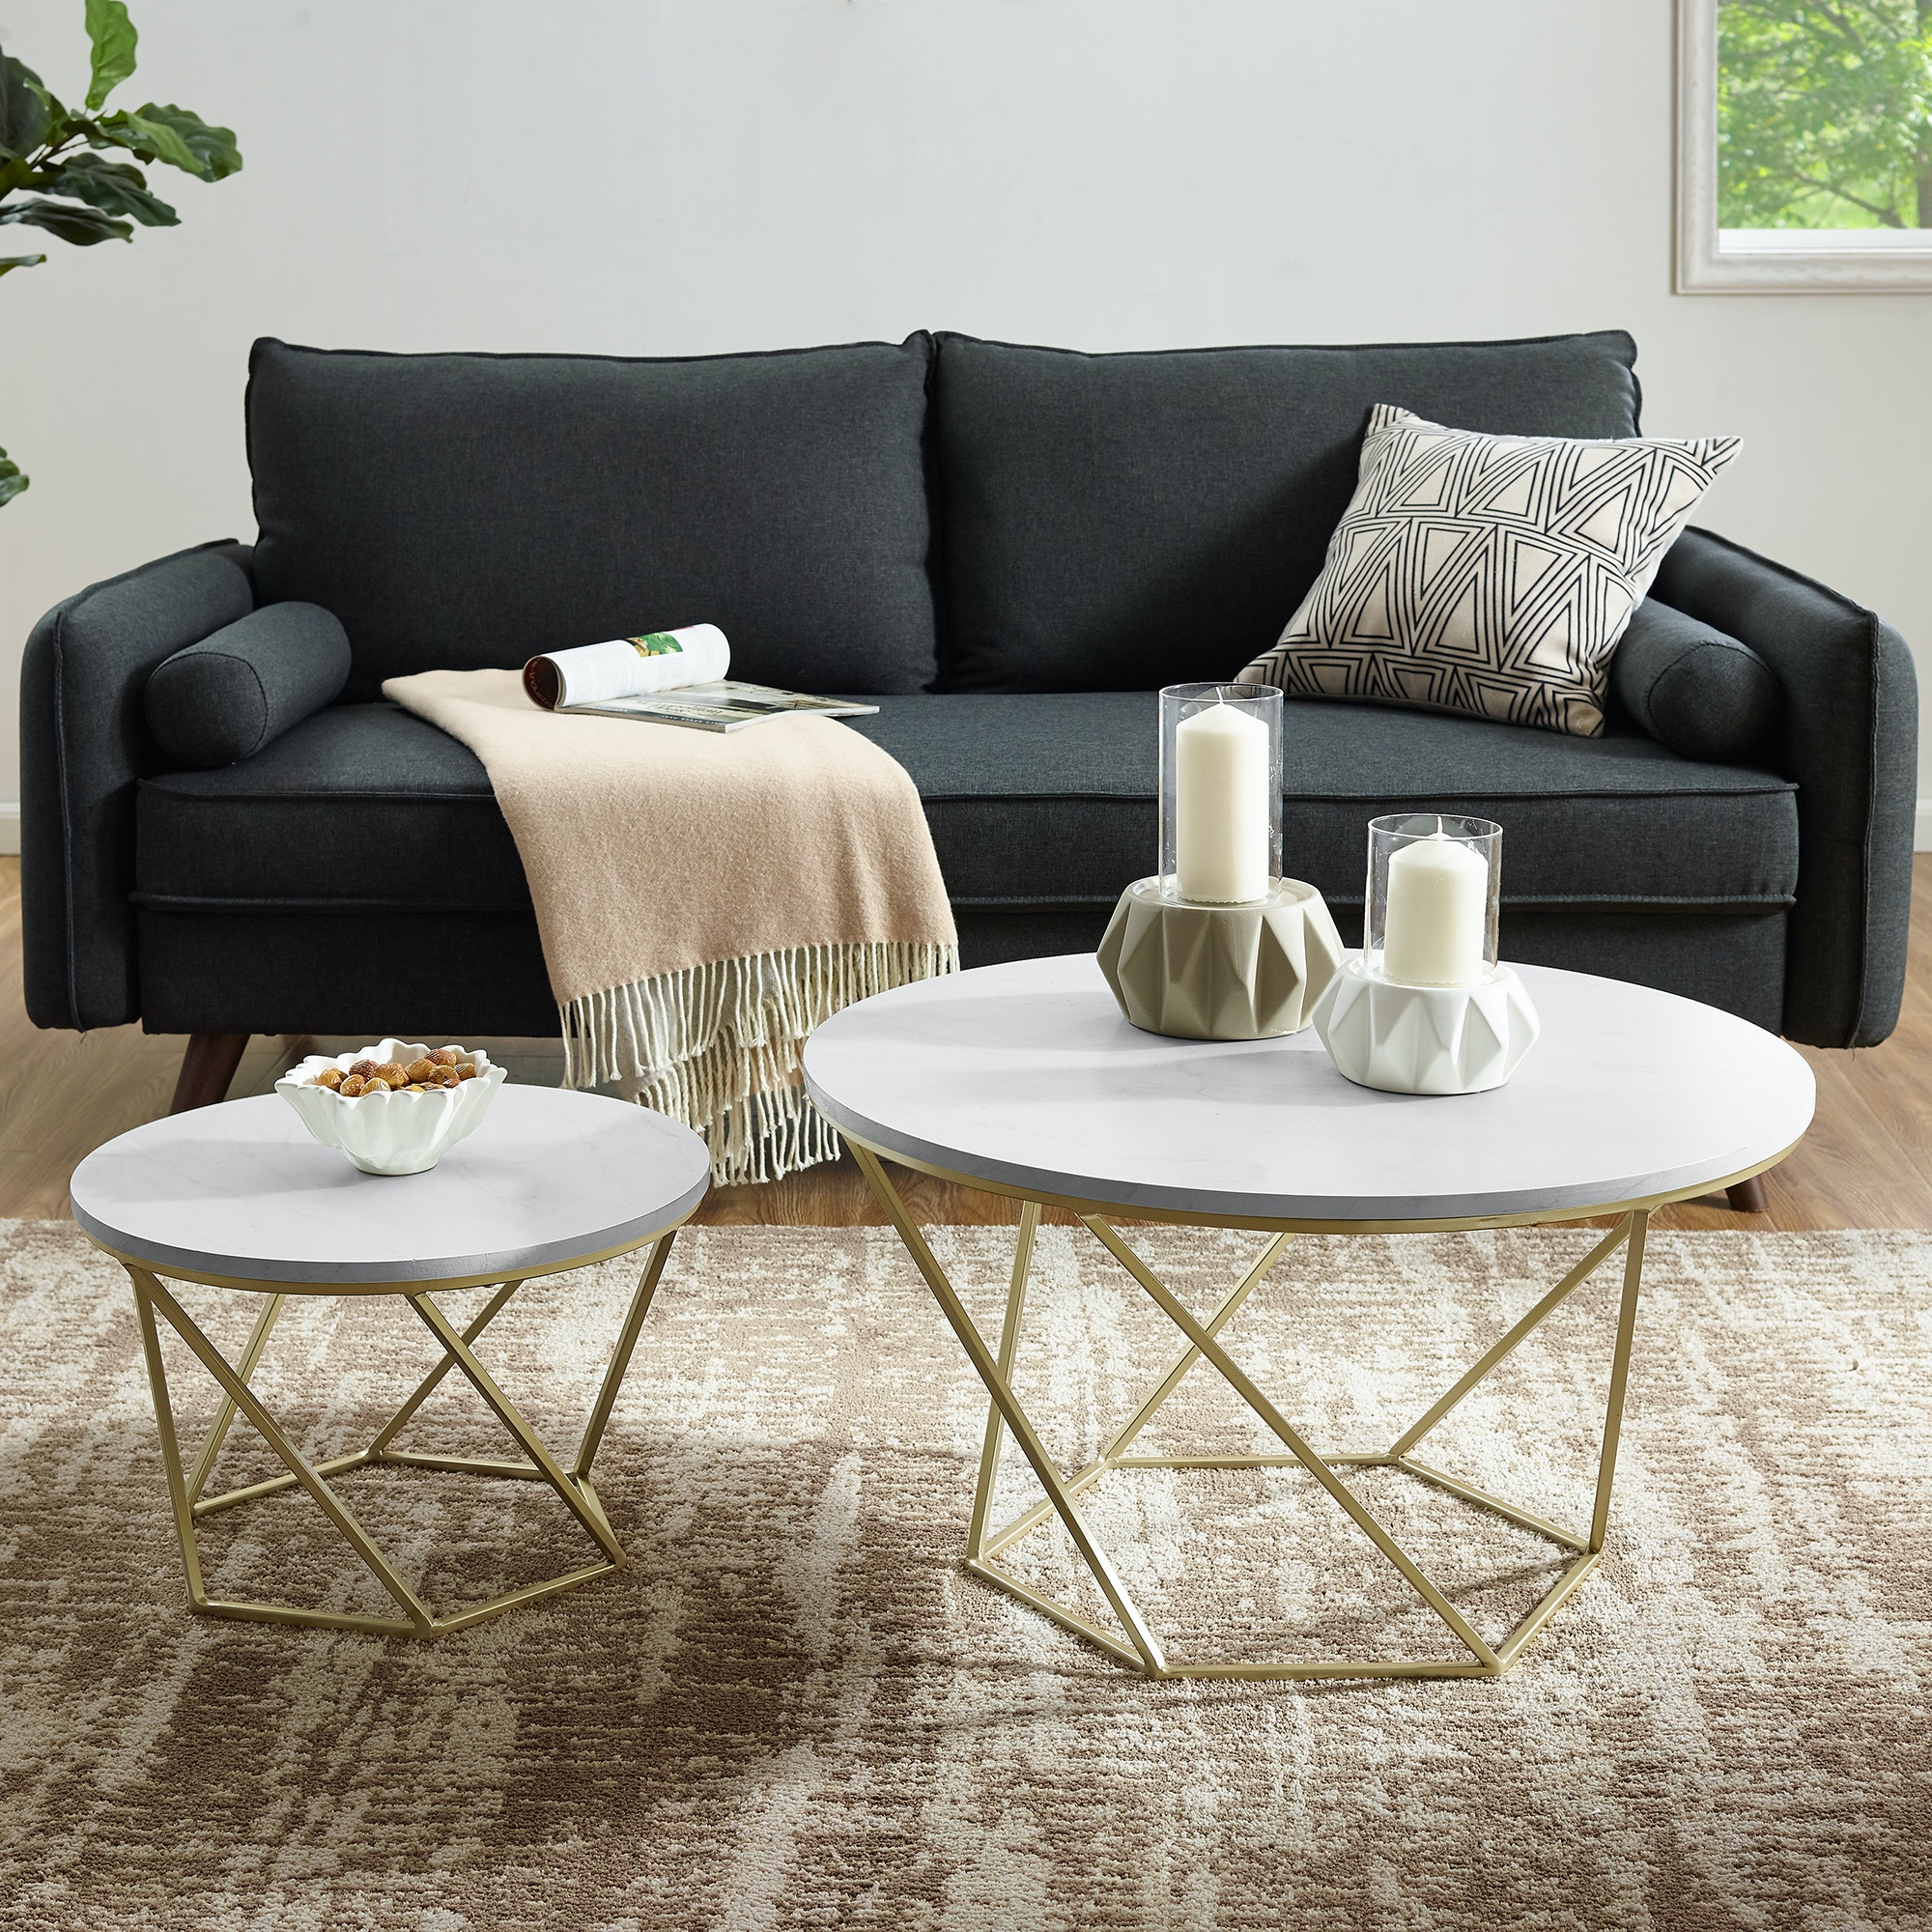 glass table sets for living room black and gray ideas modern bohemian geometric nesting coffee set white ft myers marble gold wedaf28clrgmg